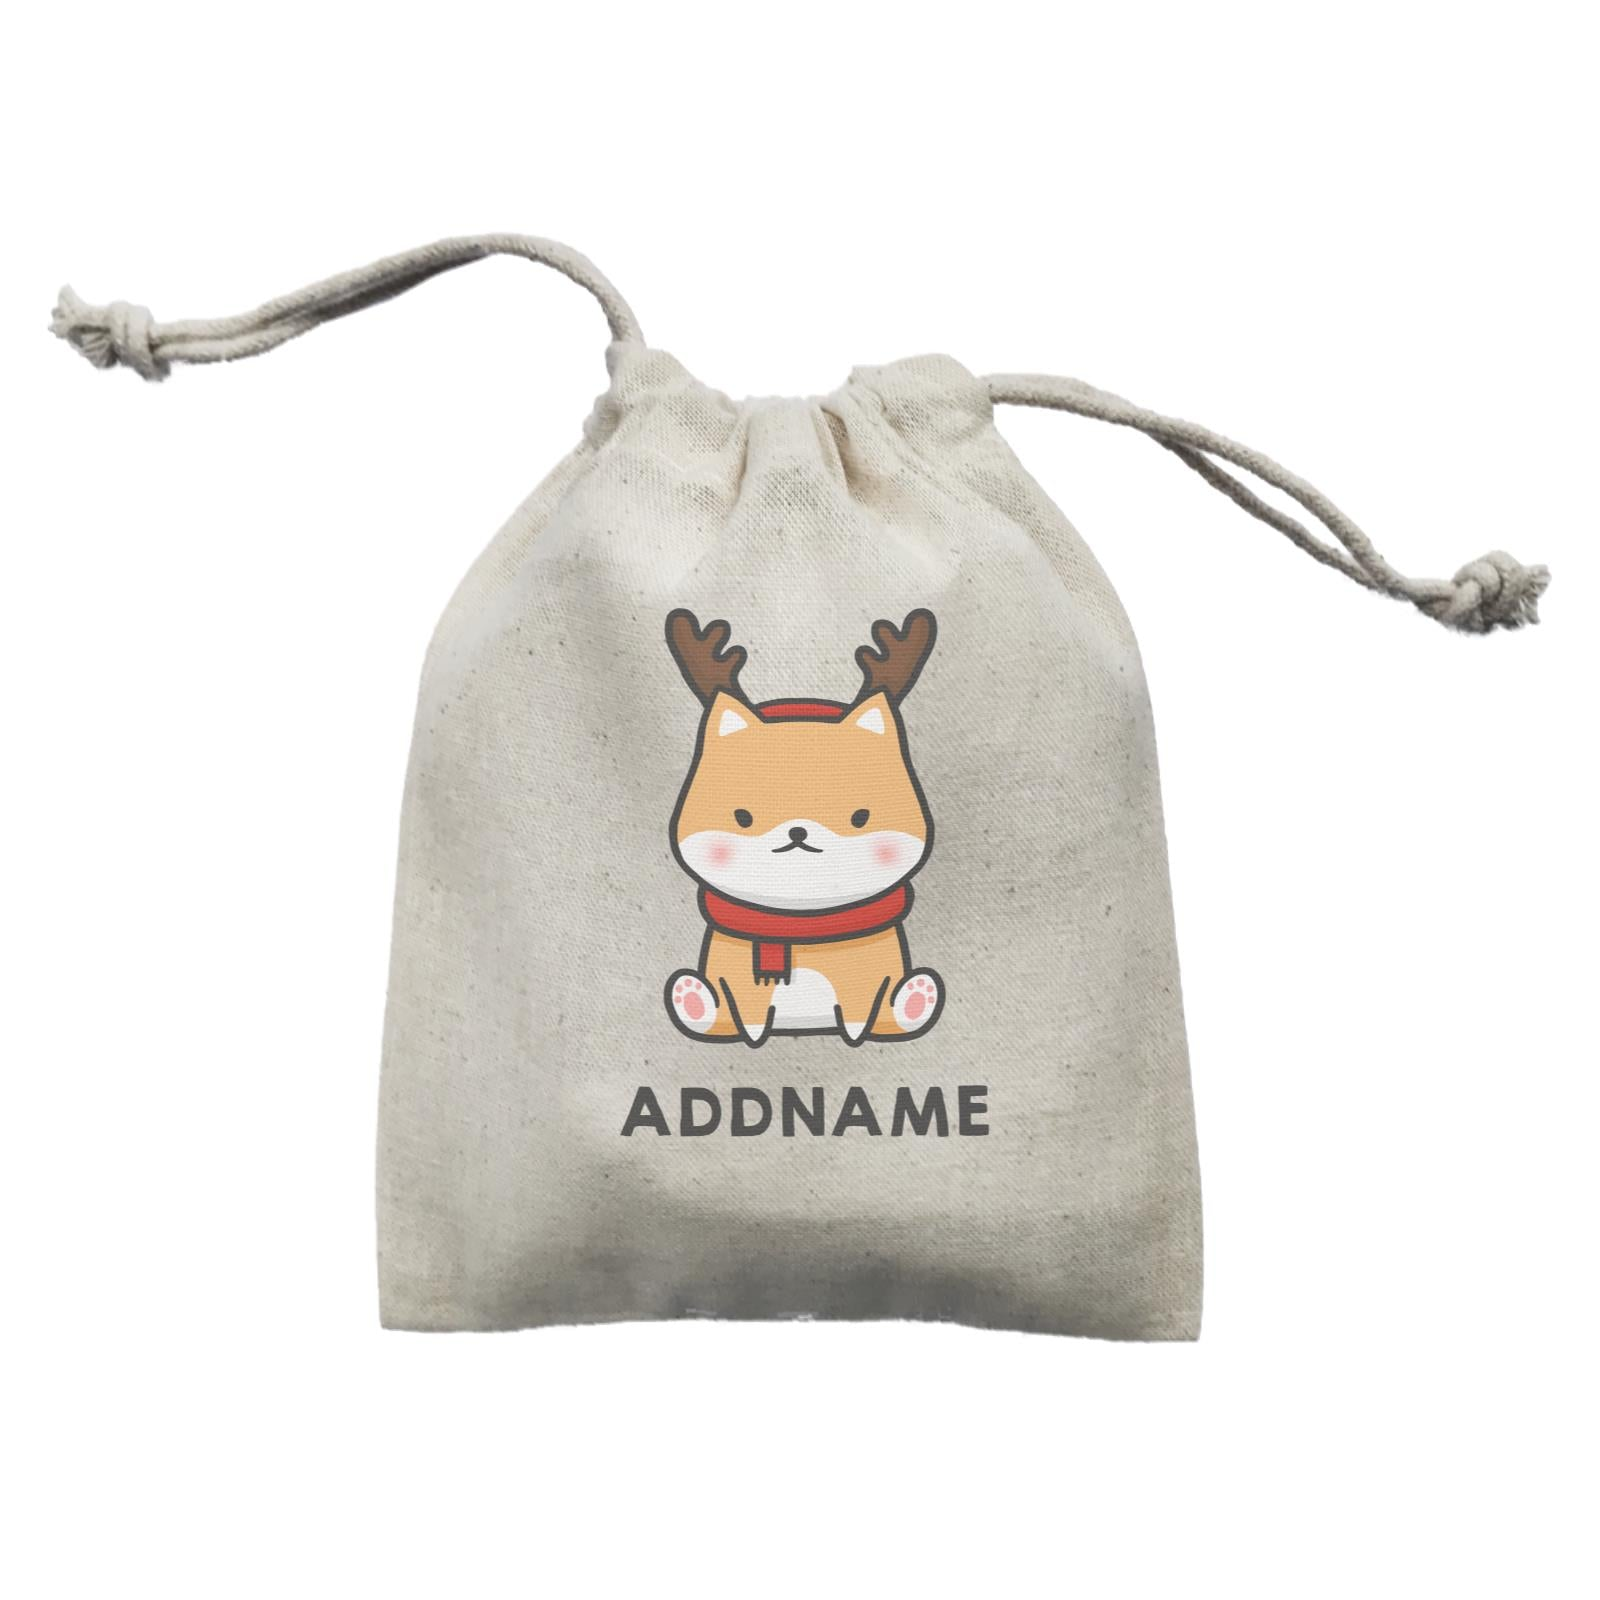 Xmas Cute Shiba Inu Sitting Addname Mini Accessories Mini Pouch